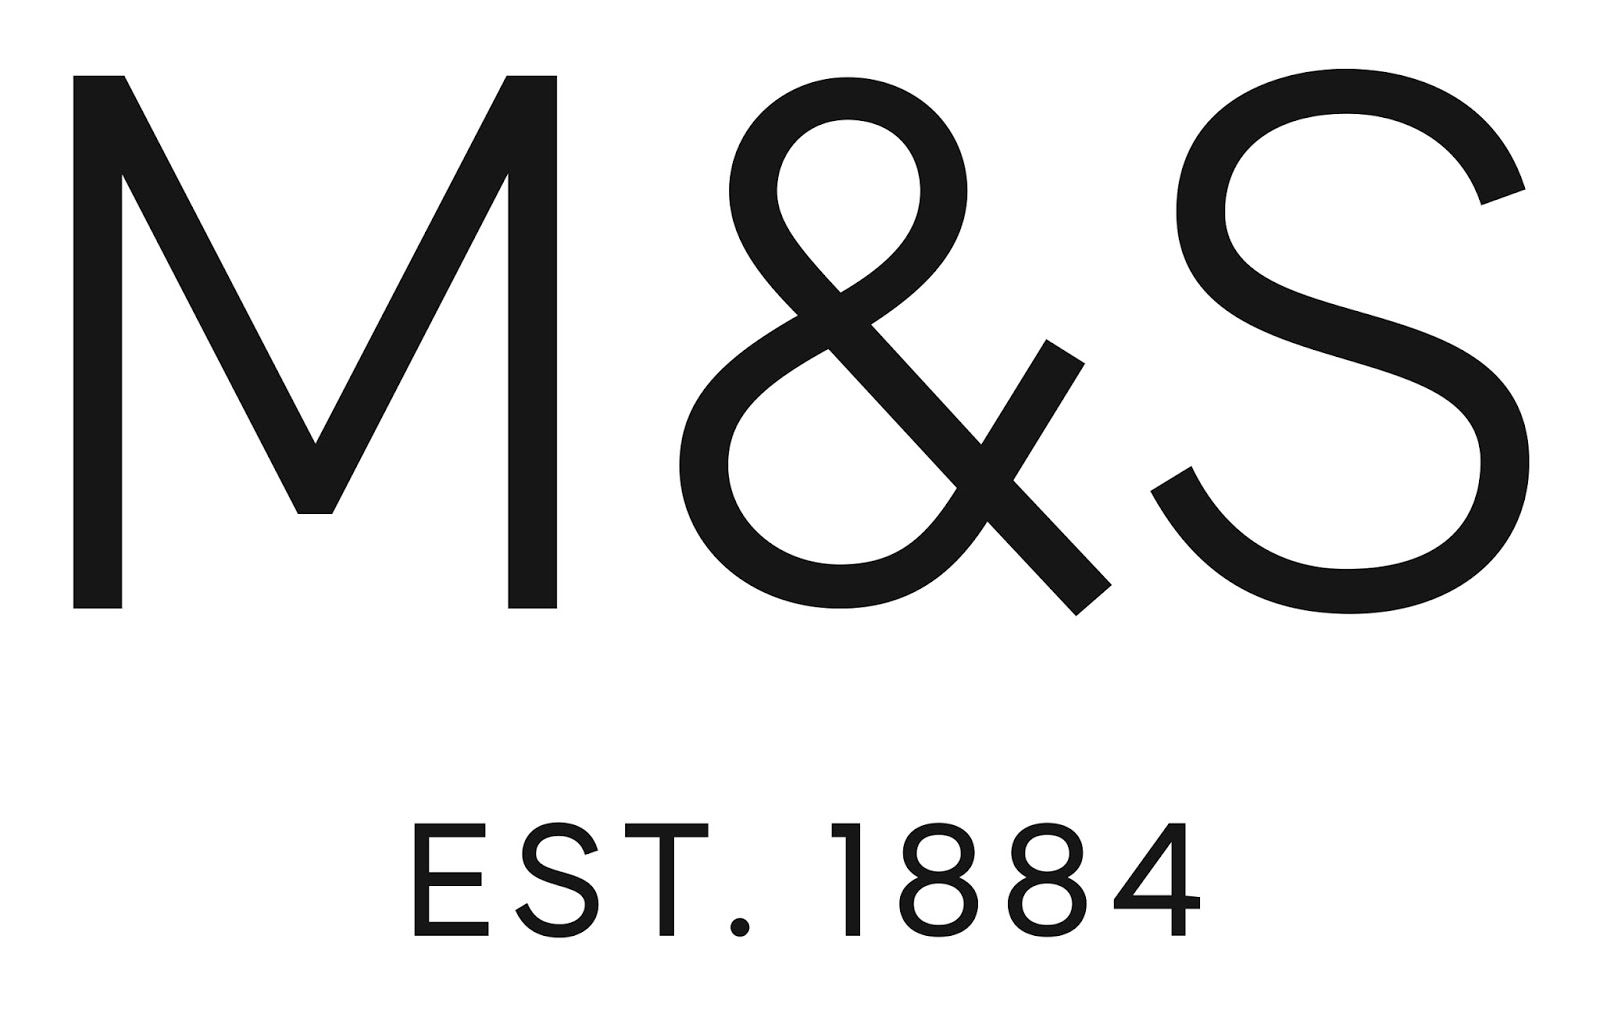 Don't miss out this great offer of Marks and Spencer - 'Up to 40% off All Offers'. Shop now and stock up on lots of great items. Whatever you need or want, life is even more affordable with the Marks and Spencer offer. MORE+.